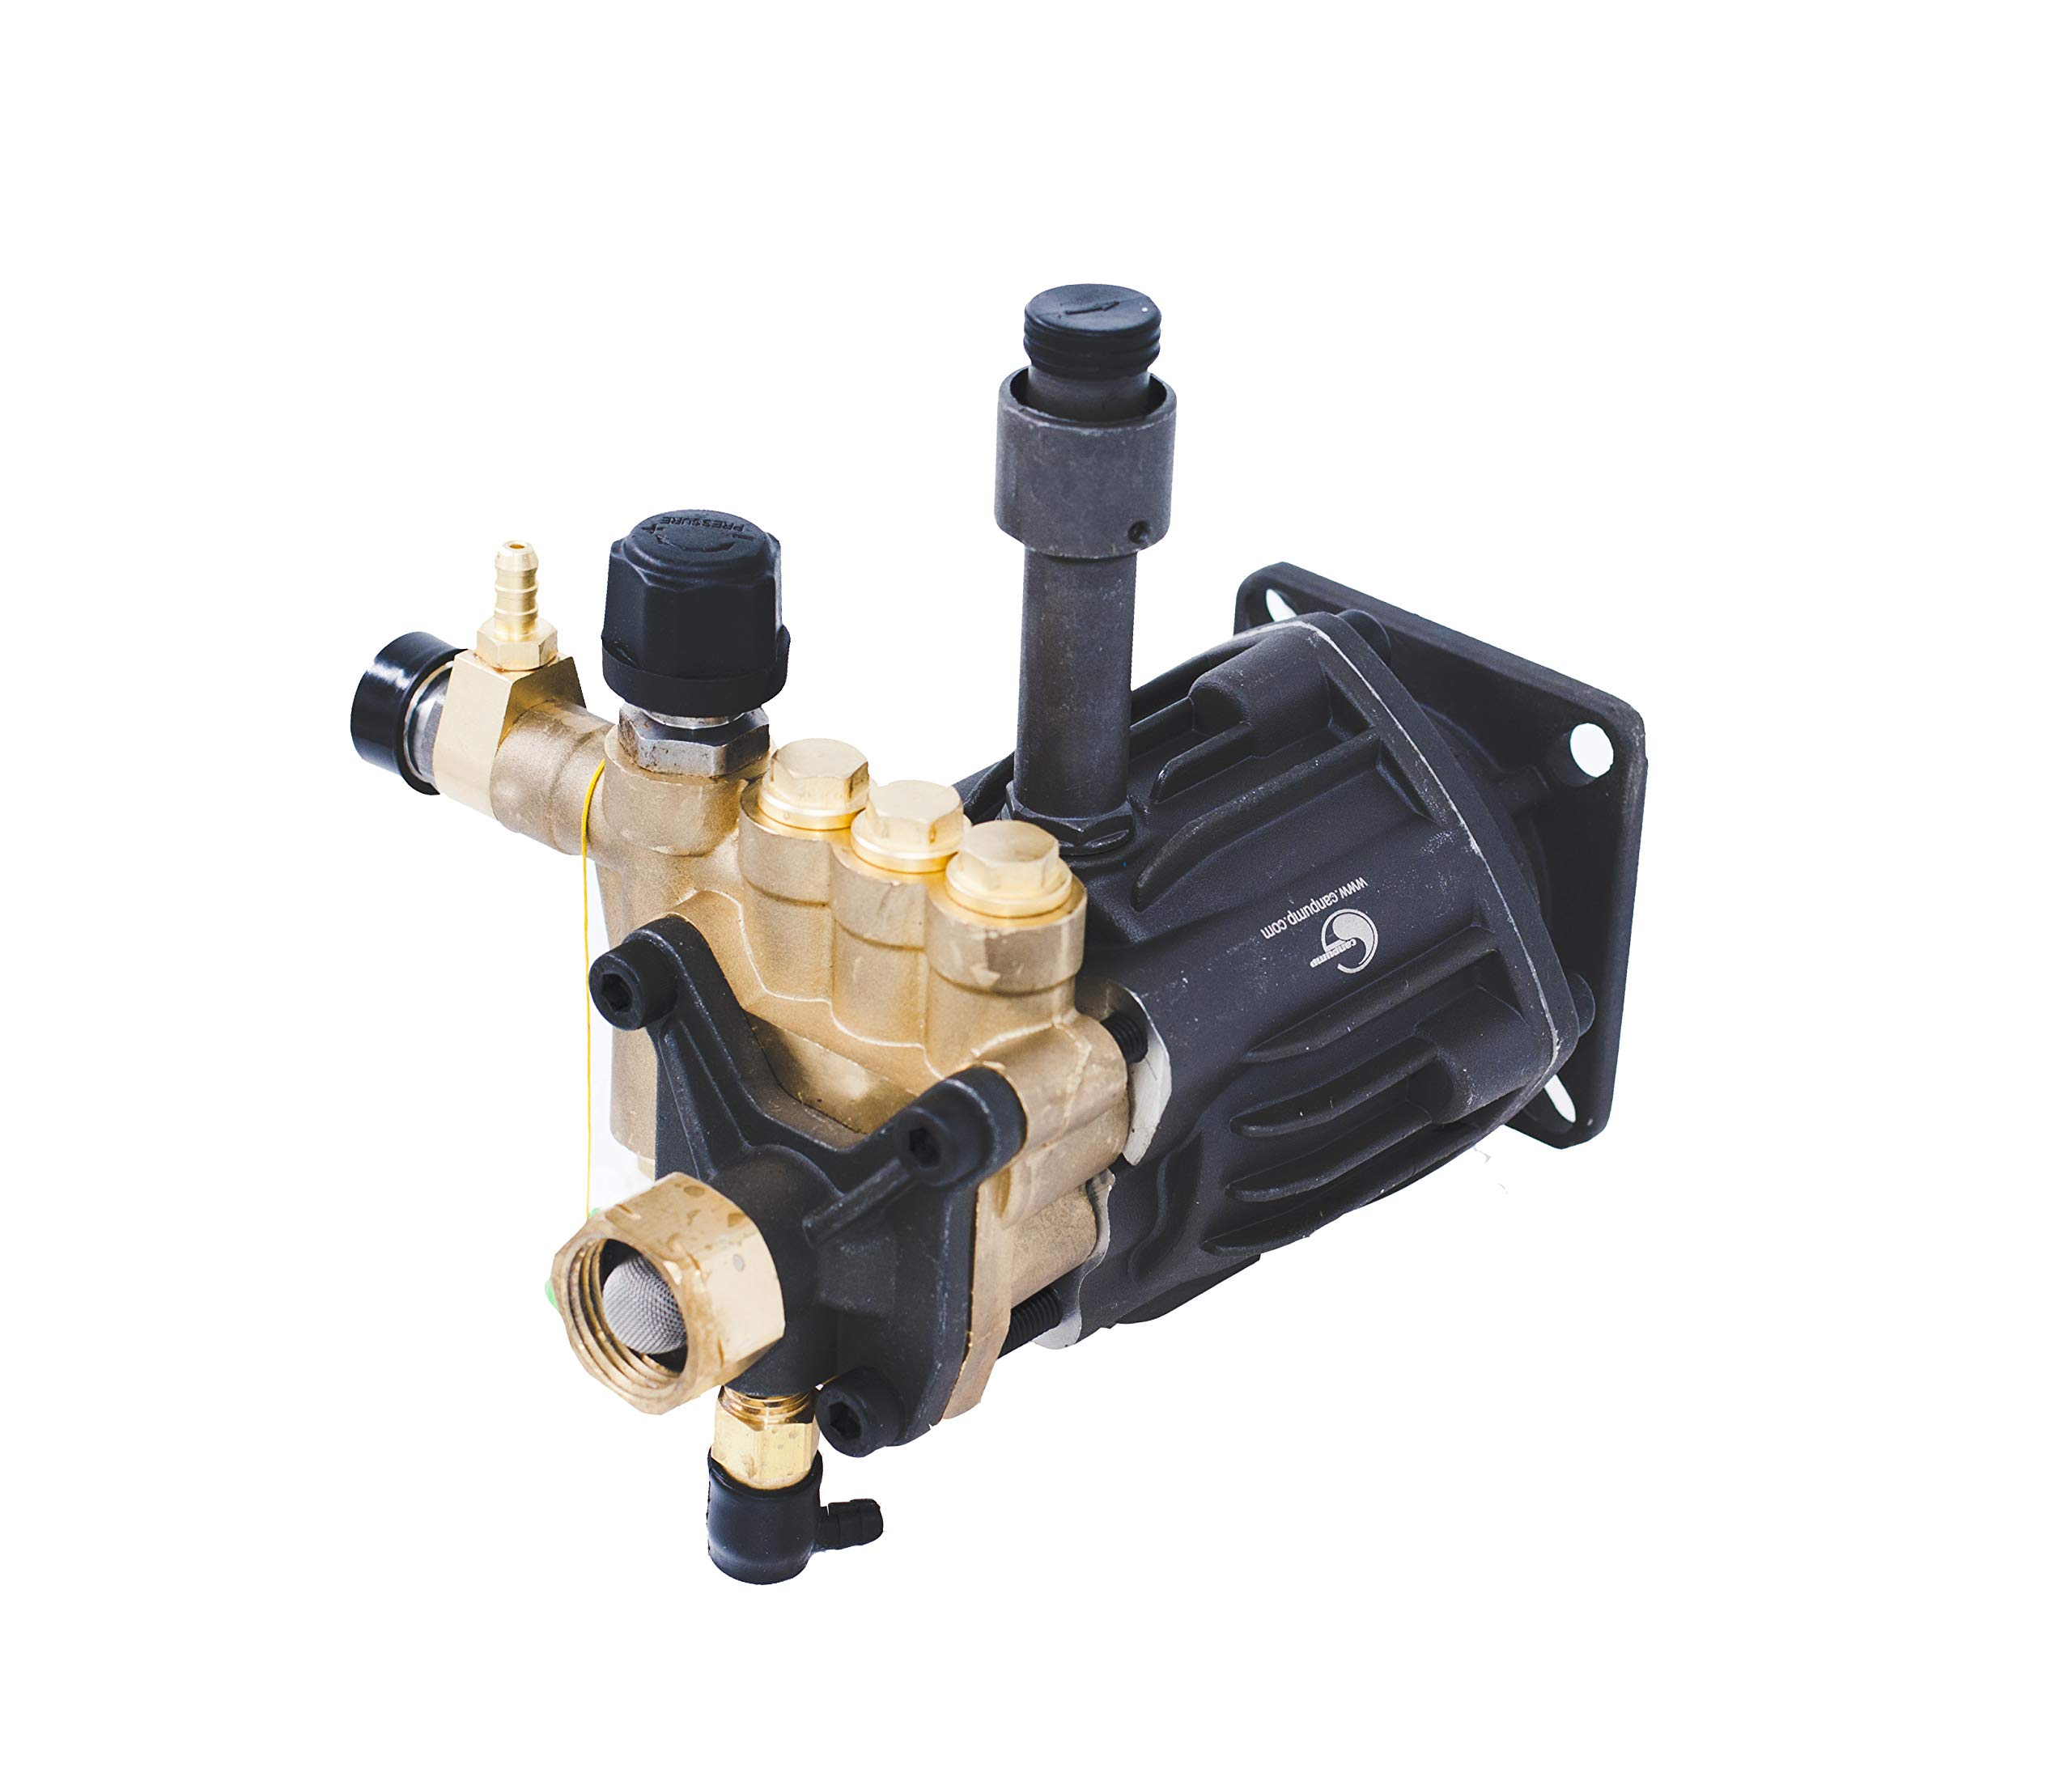 CANPUMP Axial High Pressure Washer Pump 2700 psi 6.5 HP 3/4'' Shaft fits Cat General AR by CANPUMP